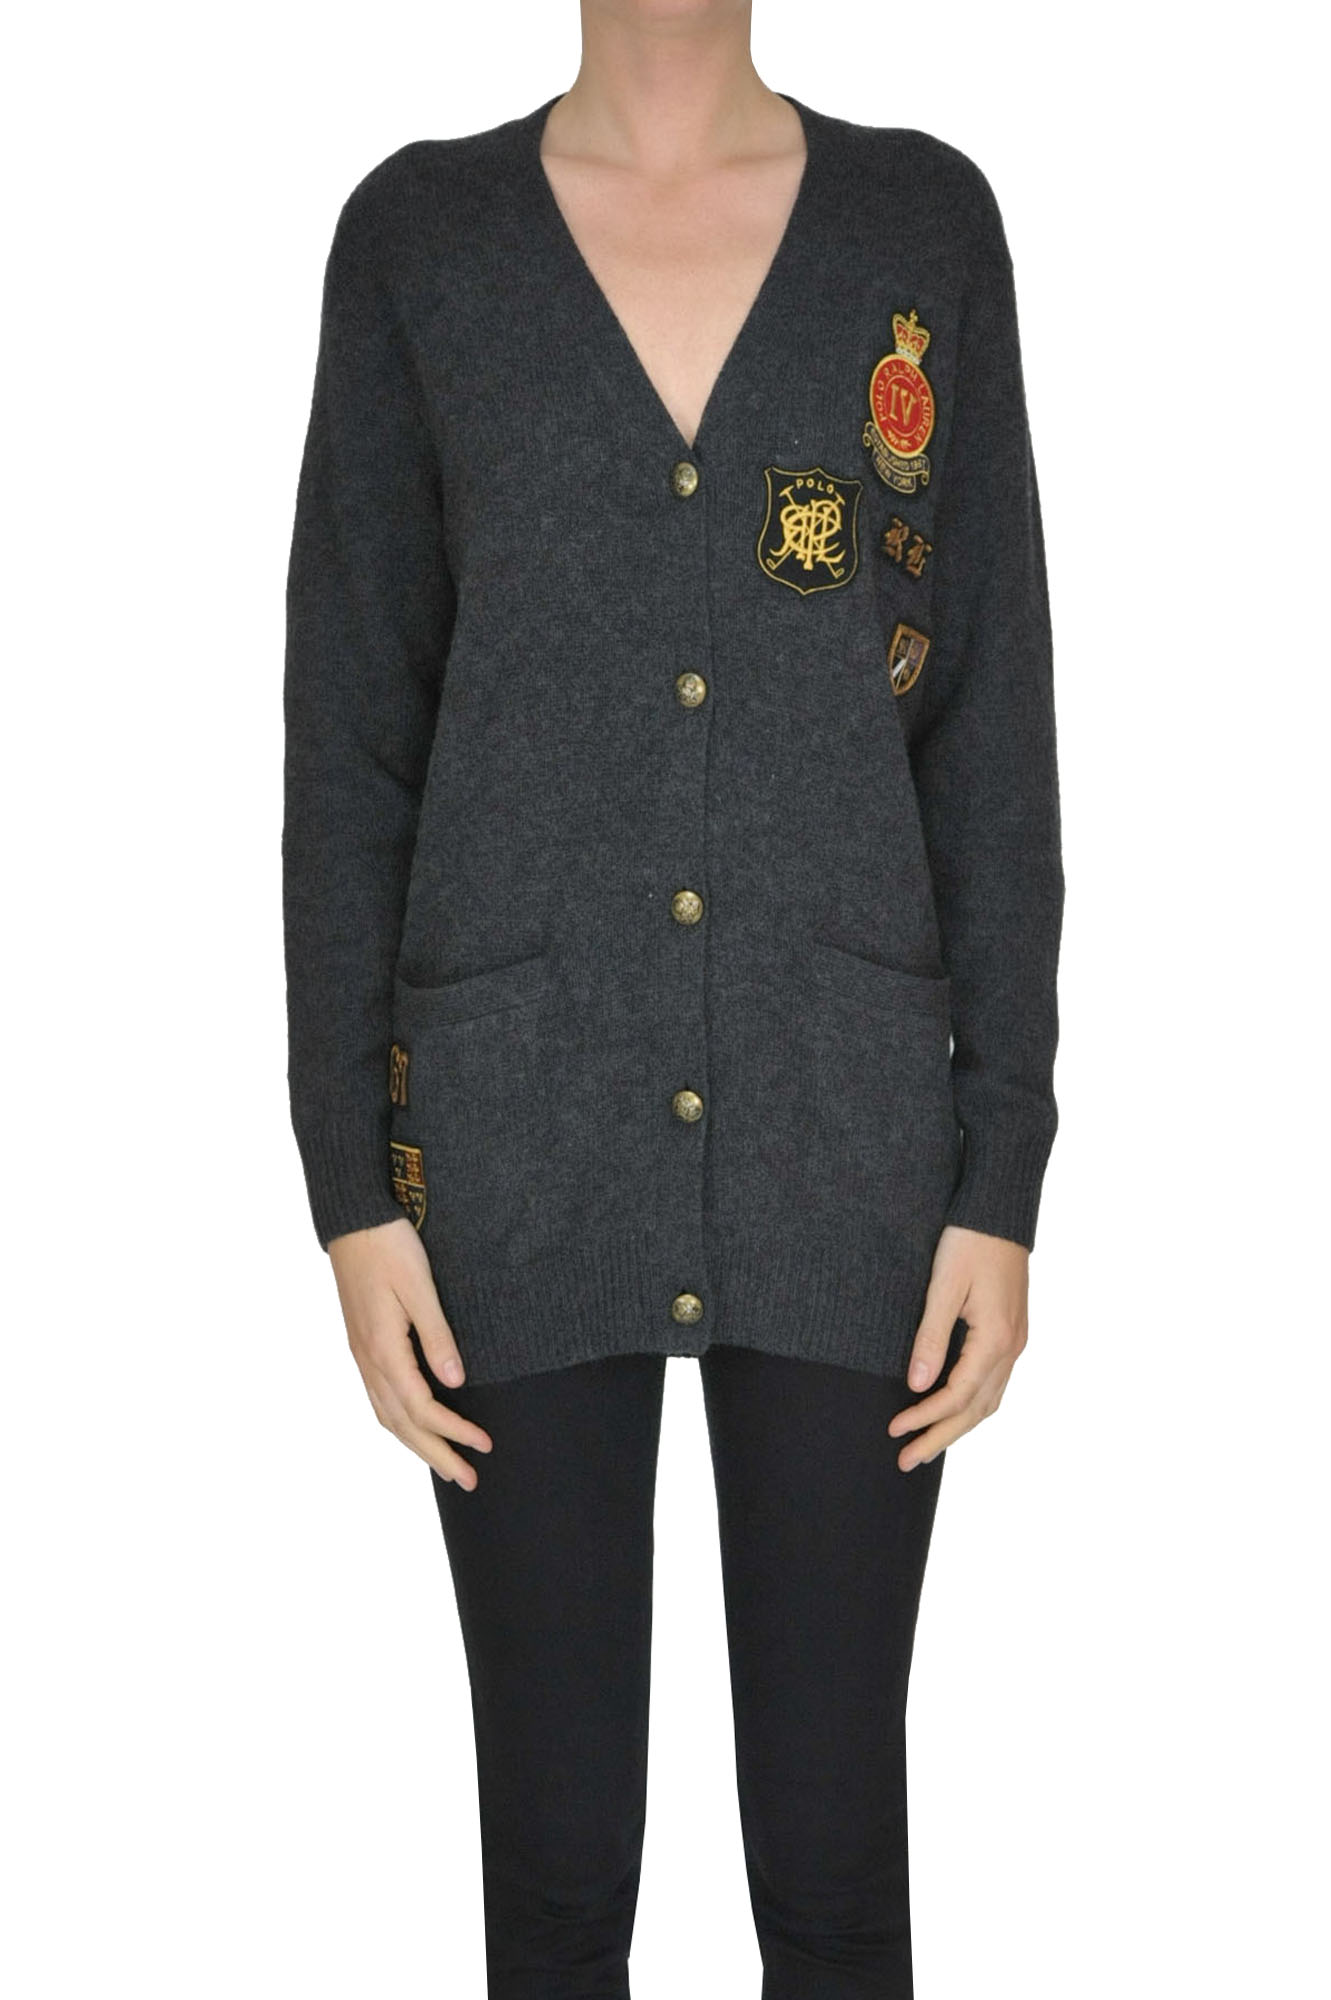 69b3ce5f1 Polo Ralph Lauren Merinos Wool And Cashmere Cardigan In Charcoal